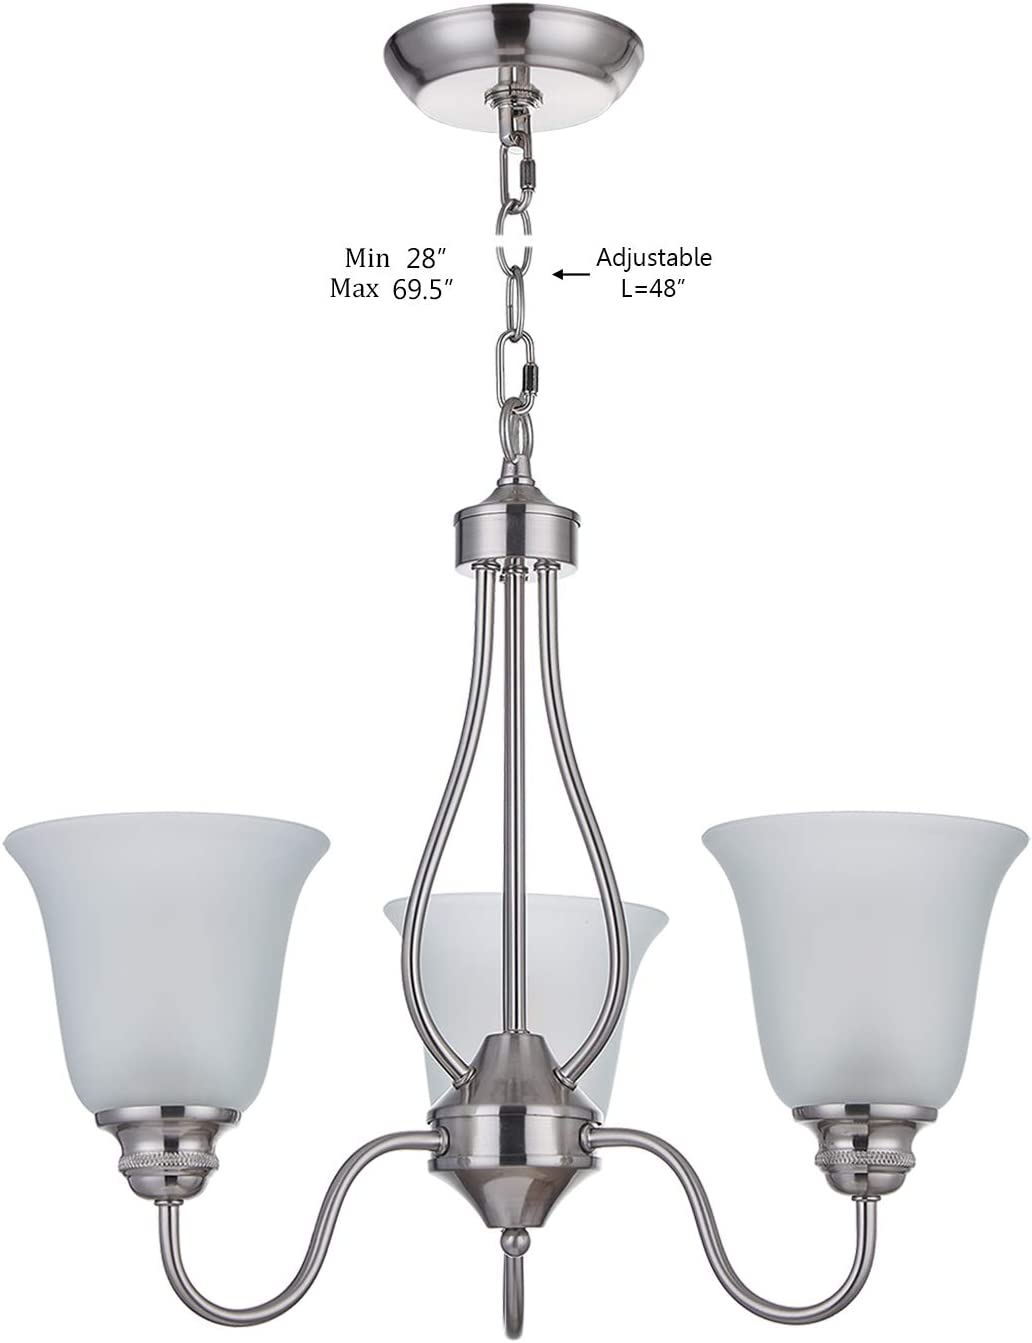 Doraimi 3 Light Chandelier with Brushed Nickel Finish, Classic Style Ceiling Light Fixture with Frosted Glass Shade for Meeting Room Dining Room Living Room Corridor, LED Bulb not Include